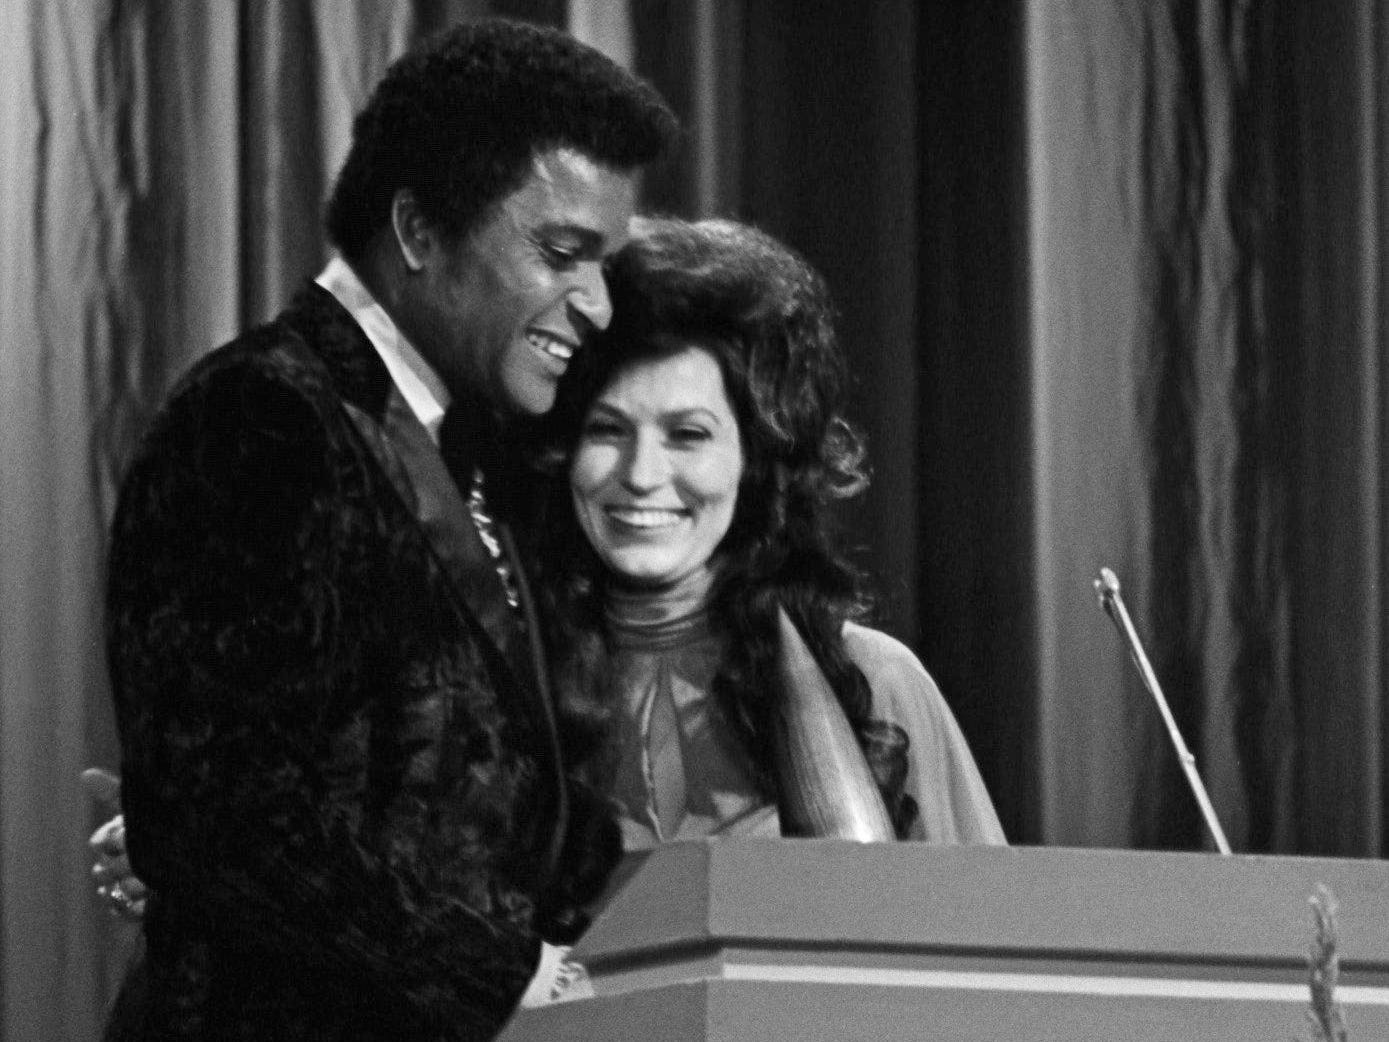 Loretta Lynn, right, accepts her award for the Female Vocalist of the Year from presenter Charley Pride during the annual CMA Awards show at the Grand Ole Opry House on Oct. 16, 1972.